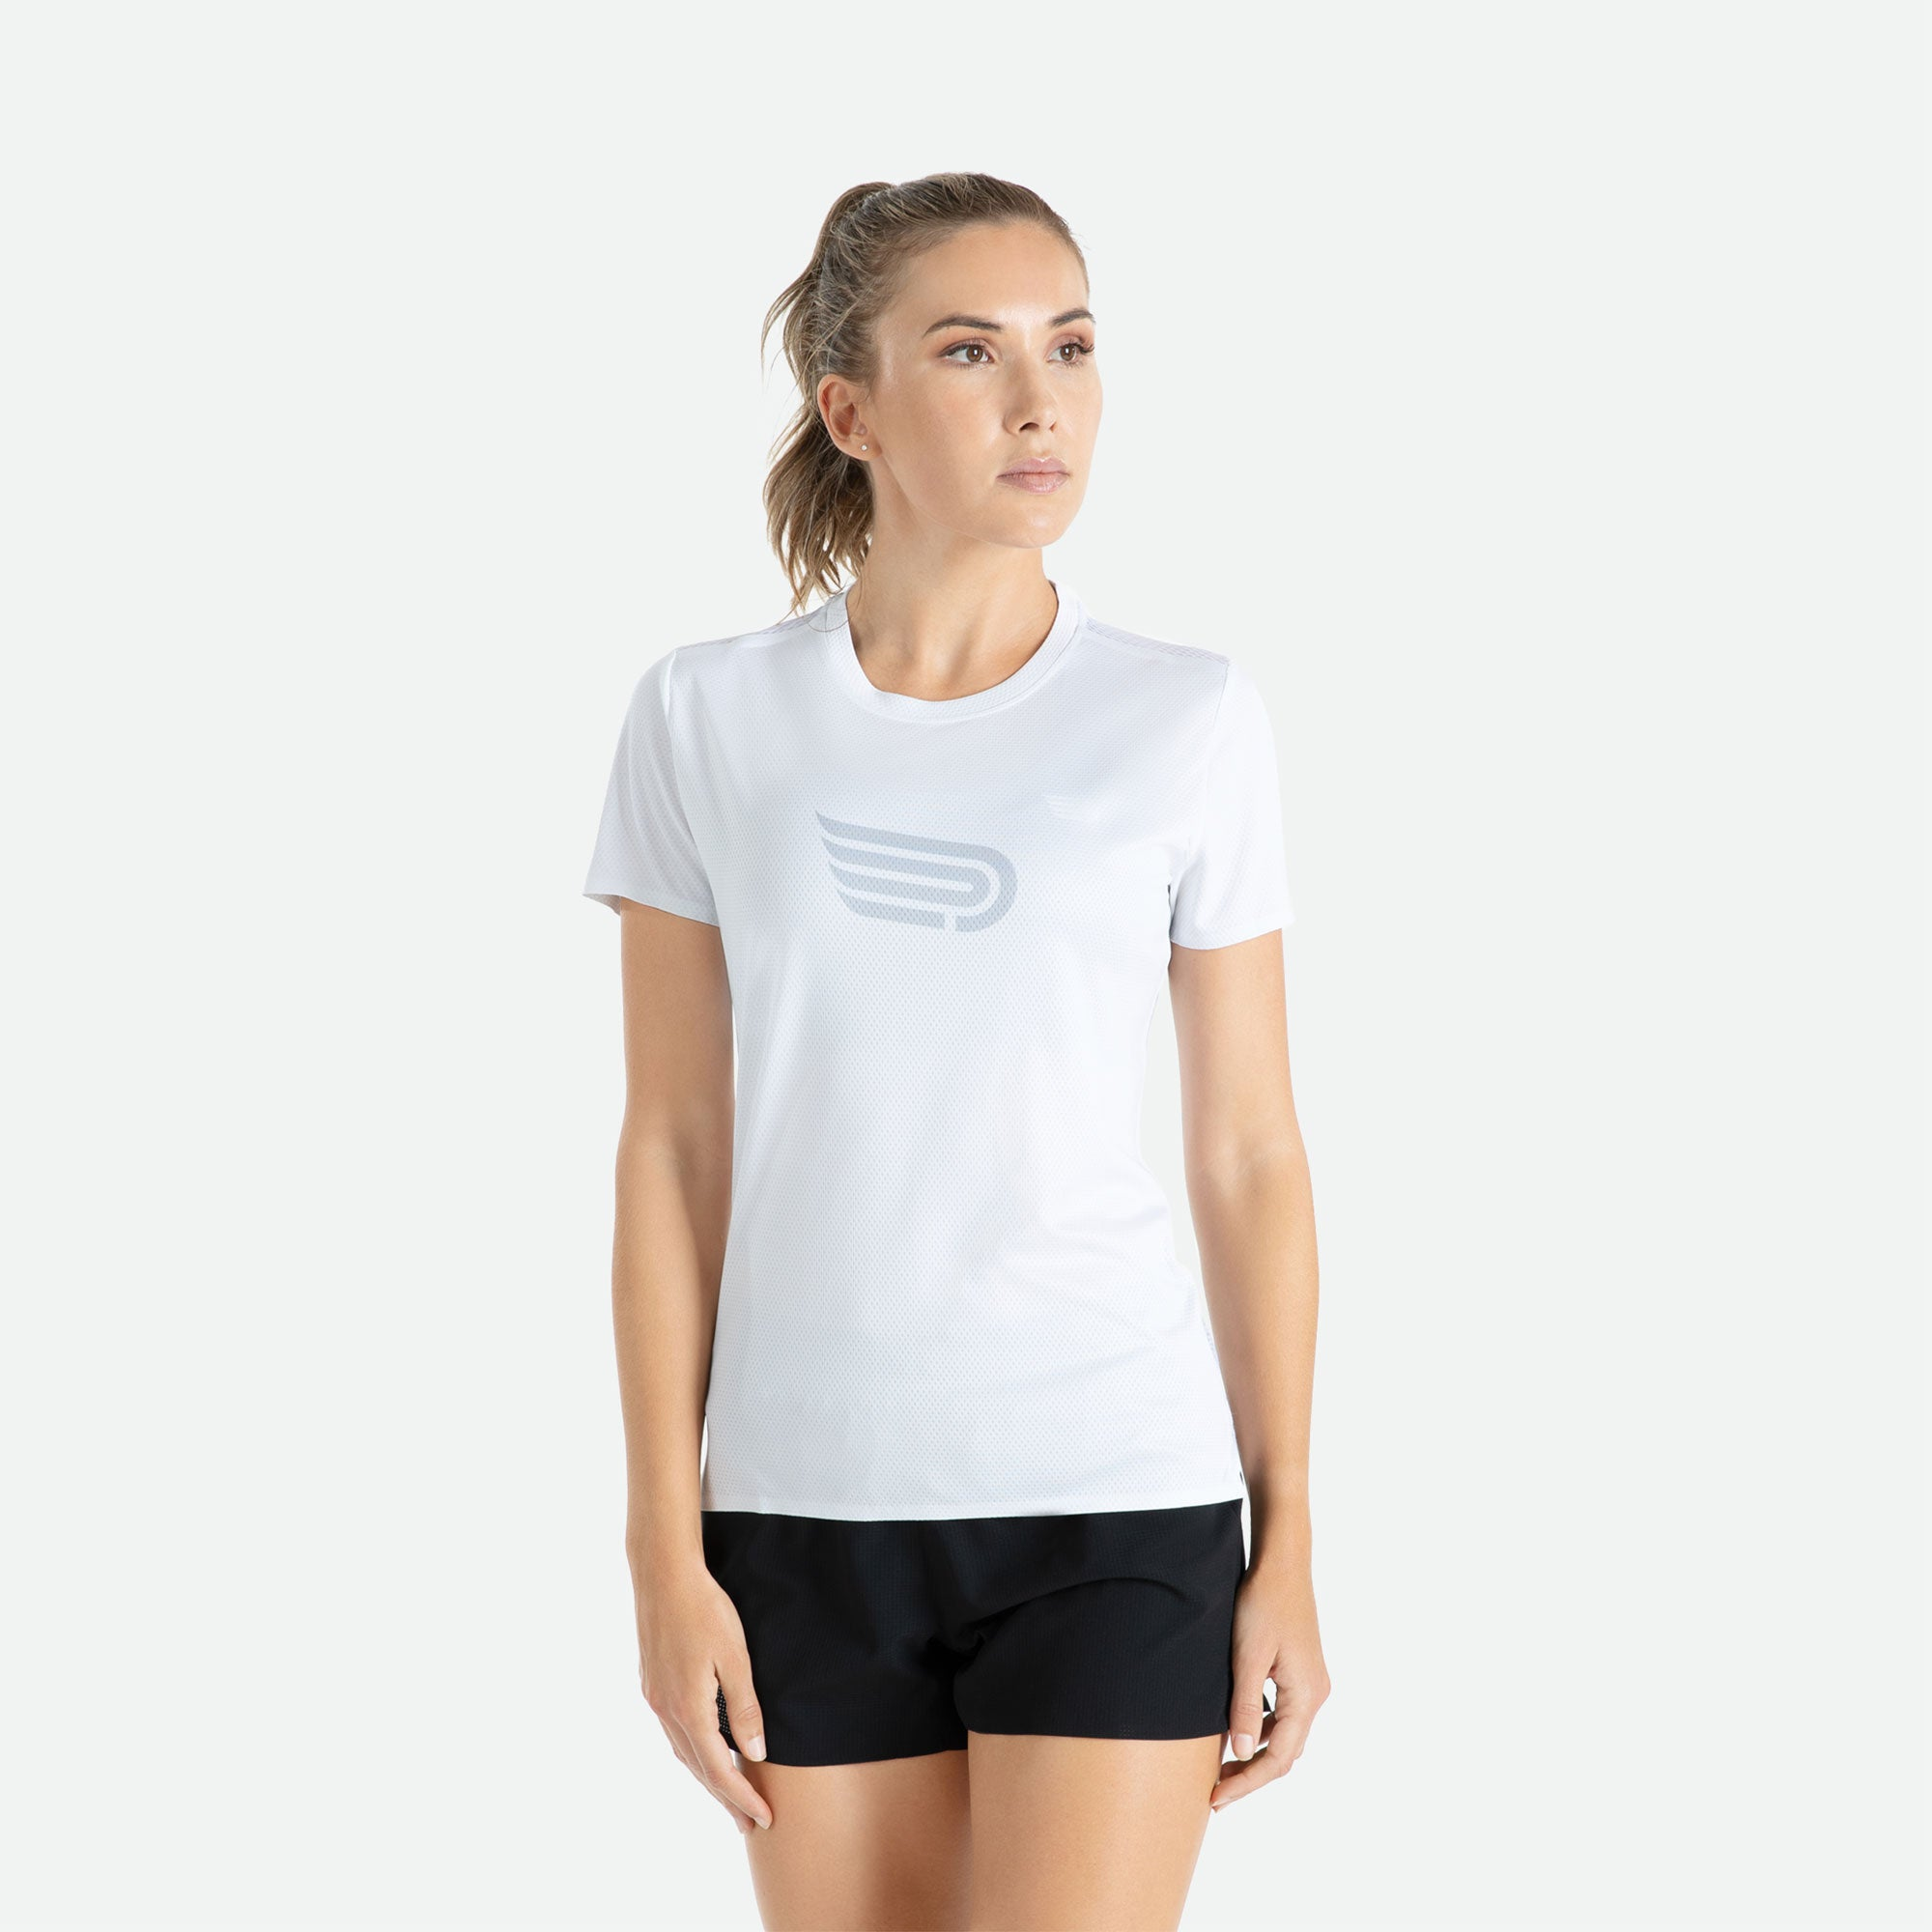 Engineered 3D vent mesh structure for optimal ventilation on the back of our Pressio women's Ārahi white/light grey short sleeve t-shirt.